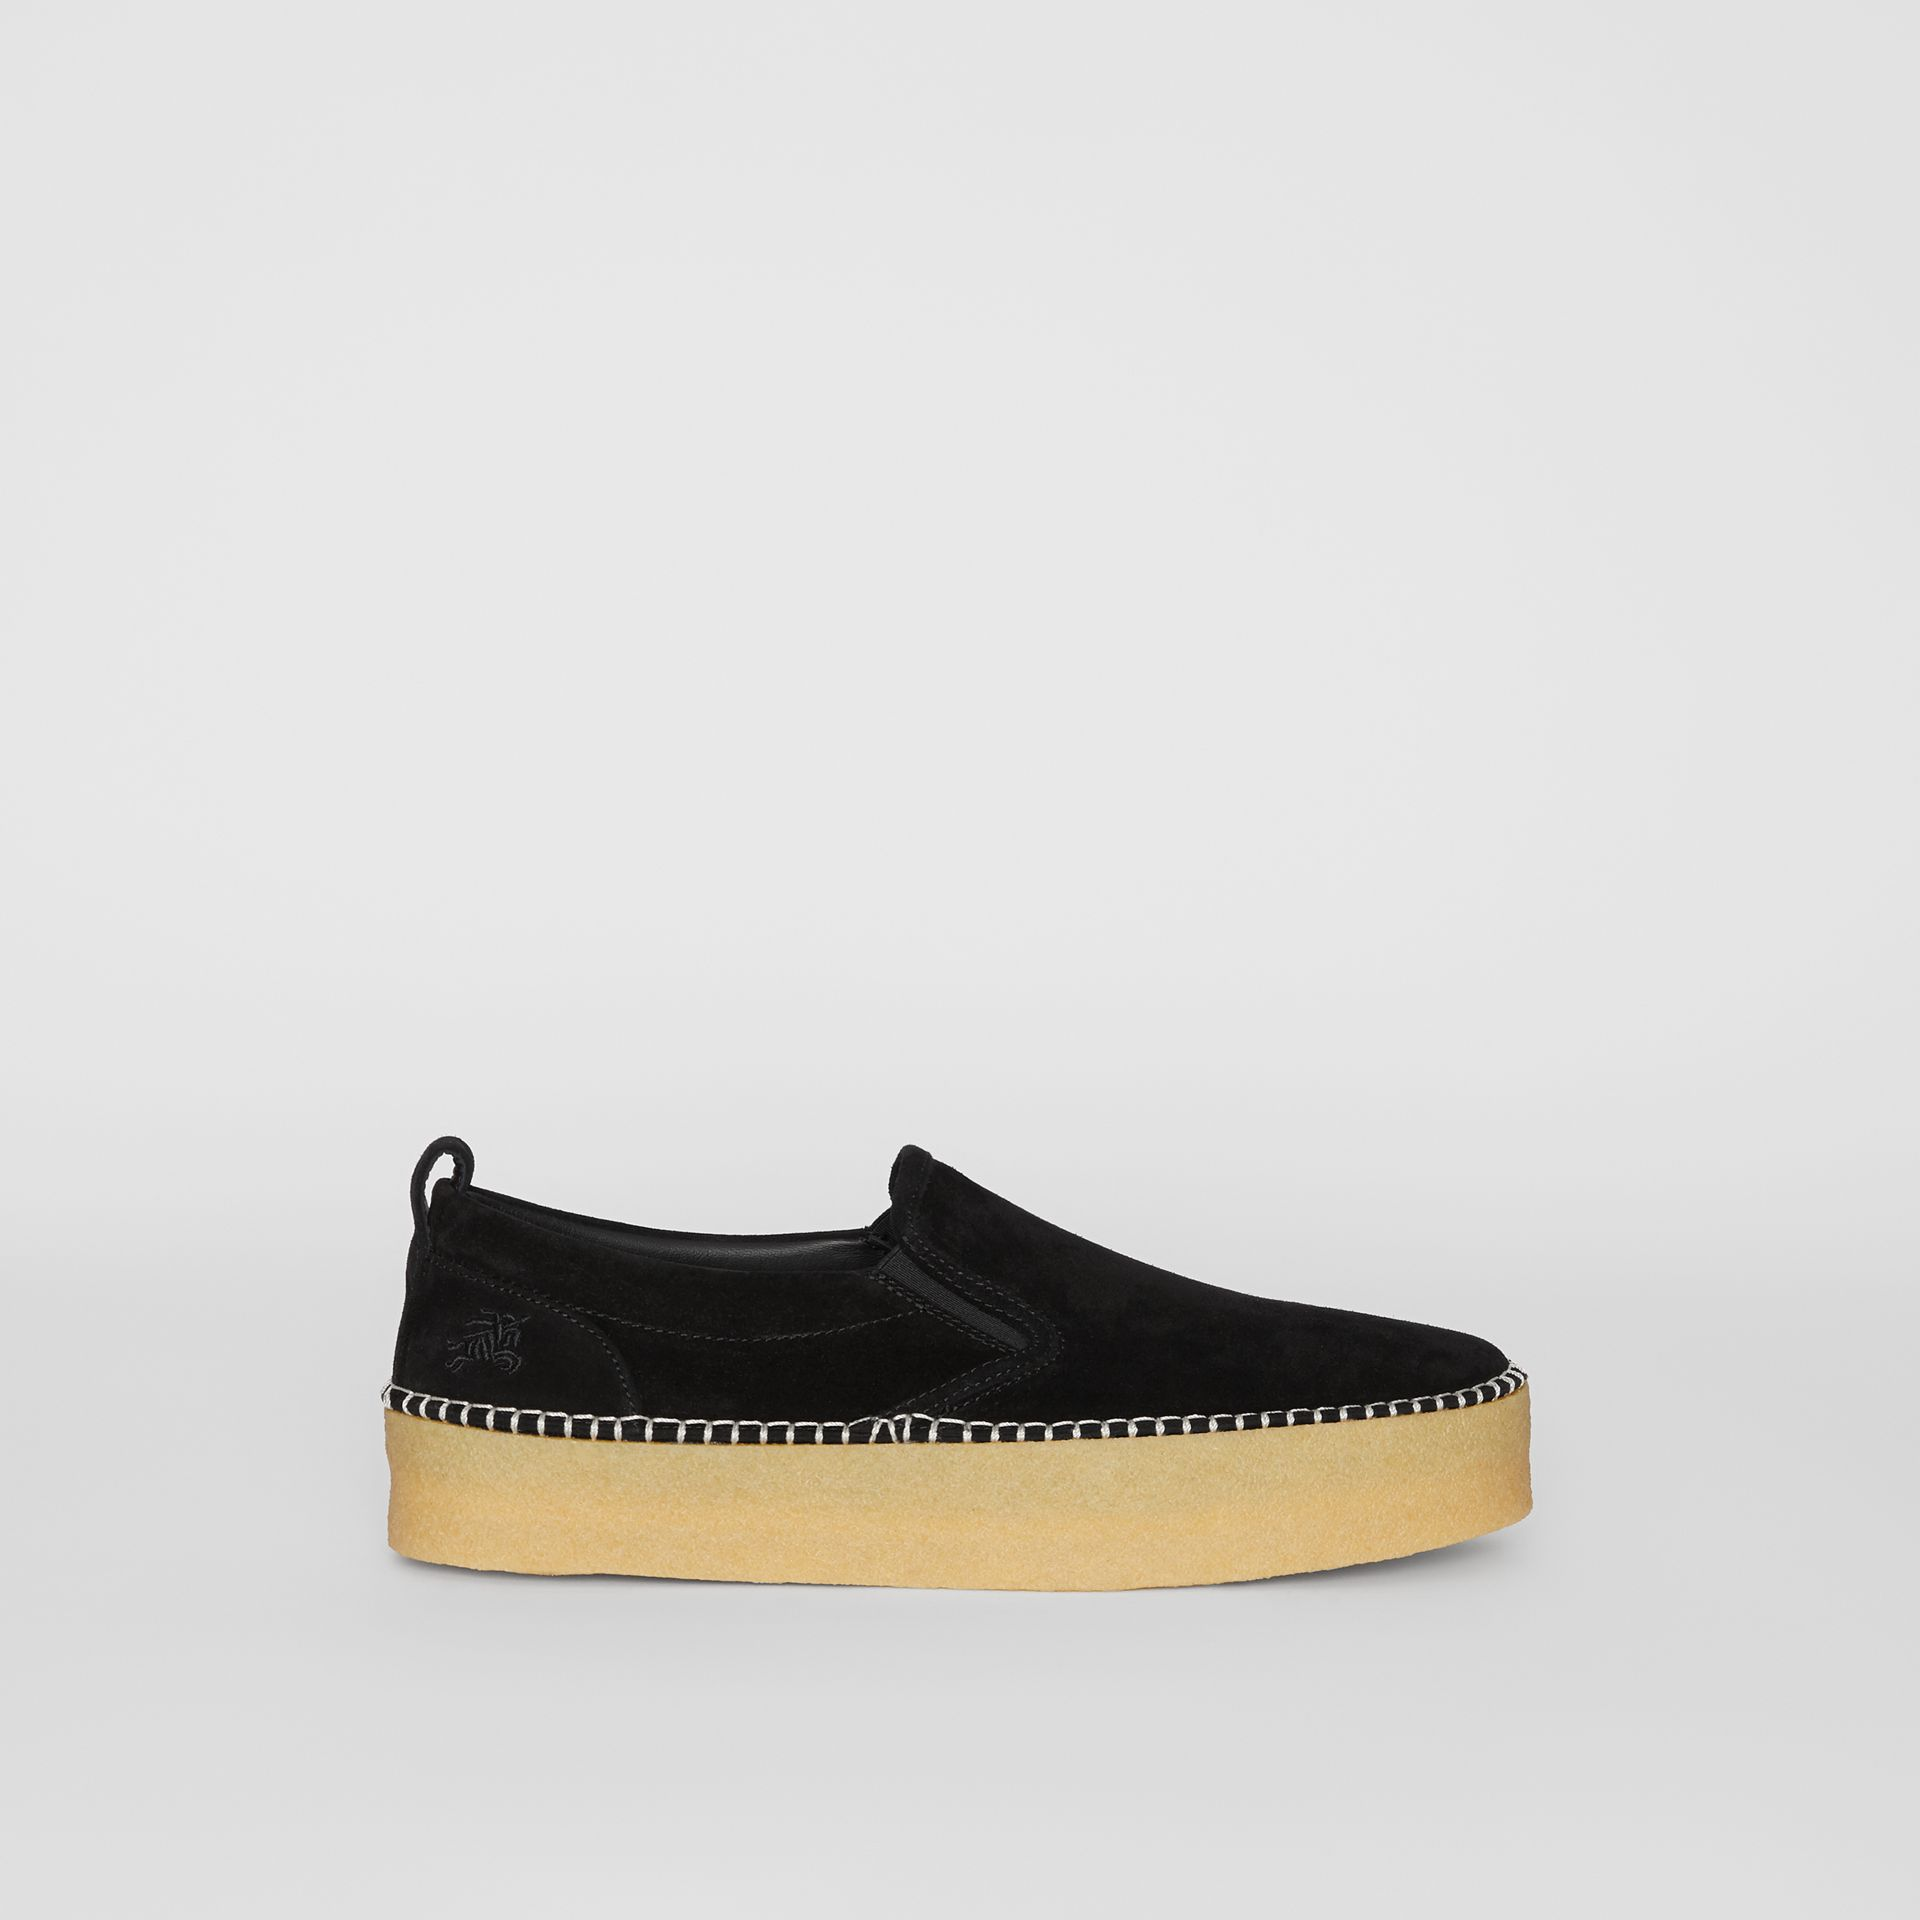 Suede Slip-on Sneakers in Black - Men | Burberry Hong Kong - gallery image 5